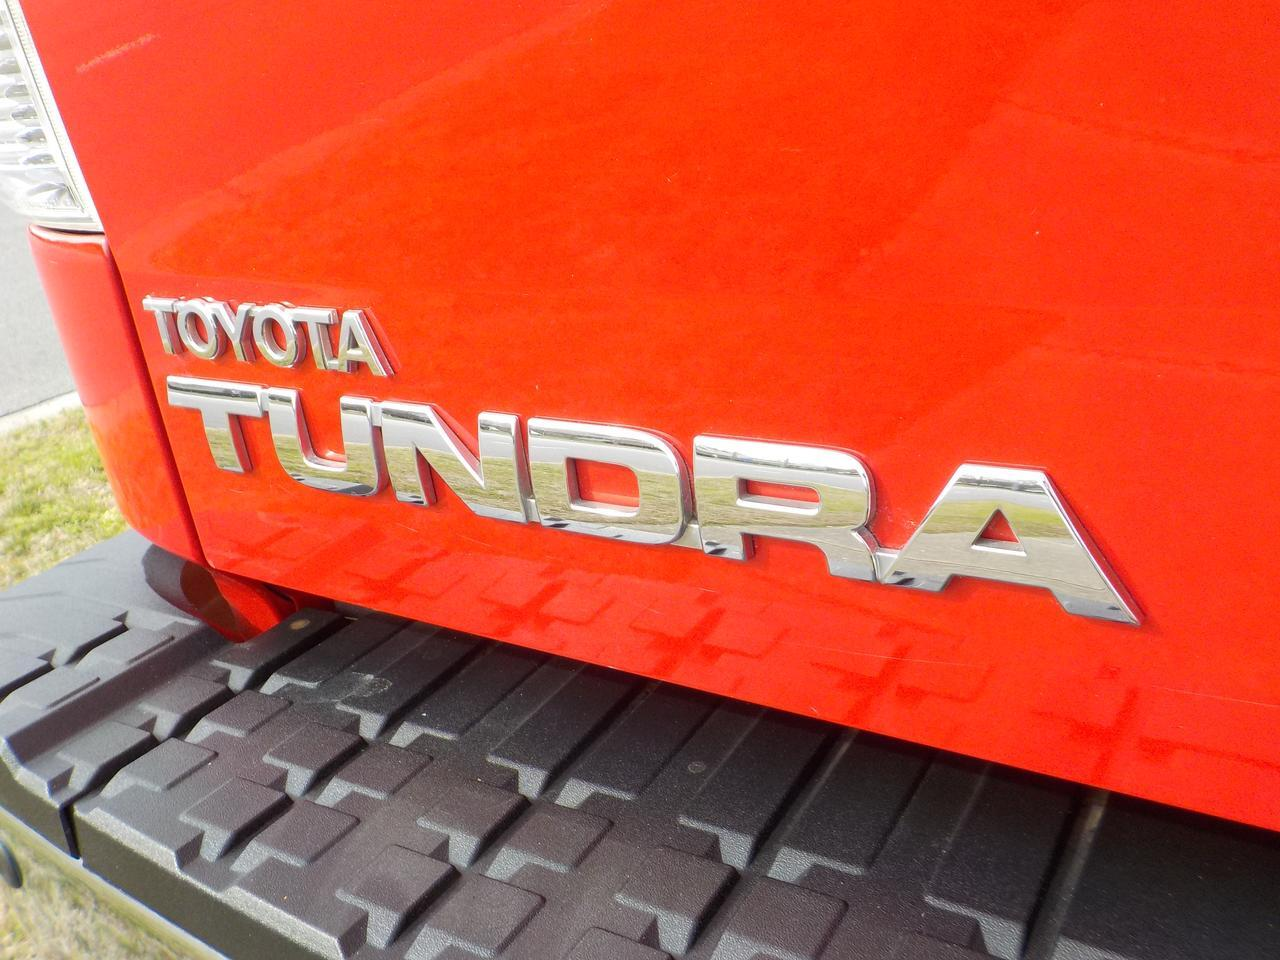 2011 TOYOTA TUNDRA LIMITED CREWMAX 4X4, WARRANTY, PARKING SENSORS, BLUETOOTH, NAVIGATION, HARD TONNEAU COVER, SUNROOF! Virginia Beach VA